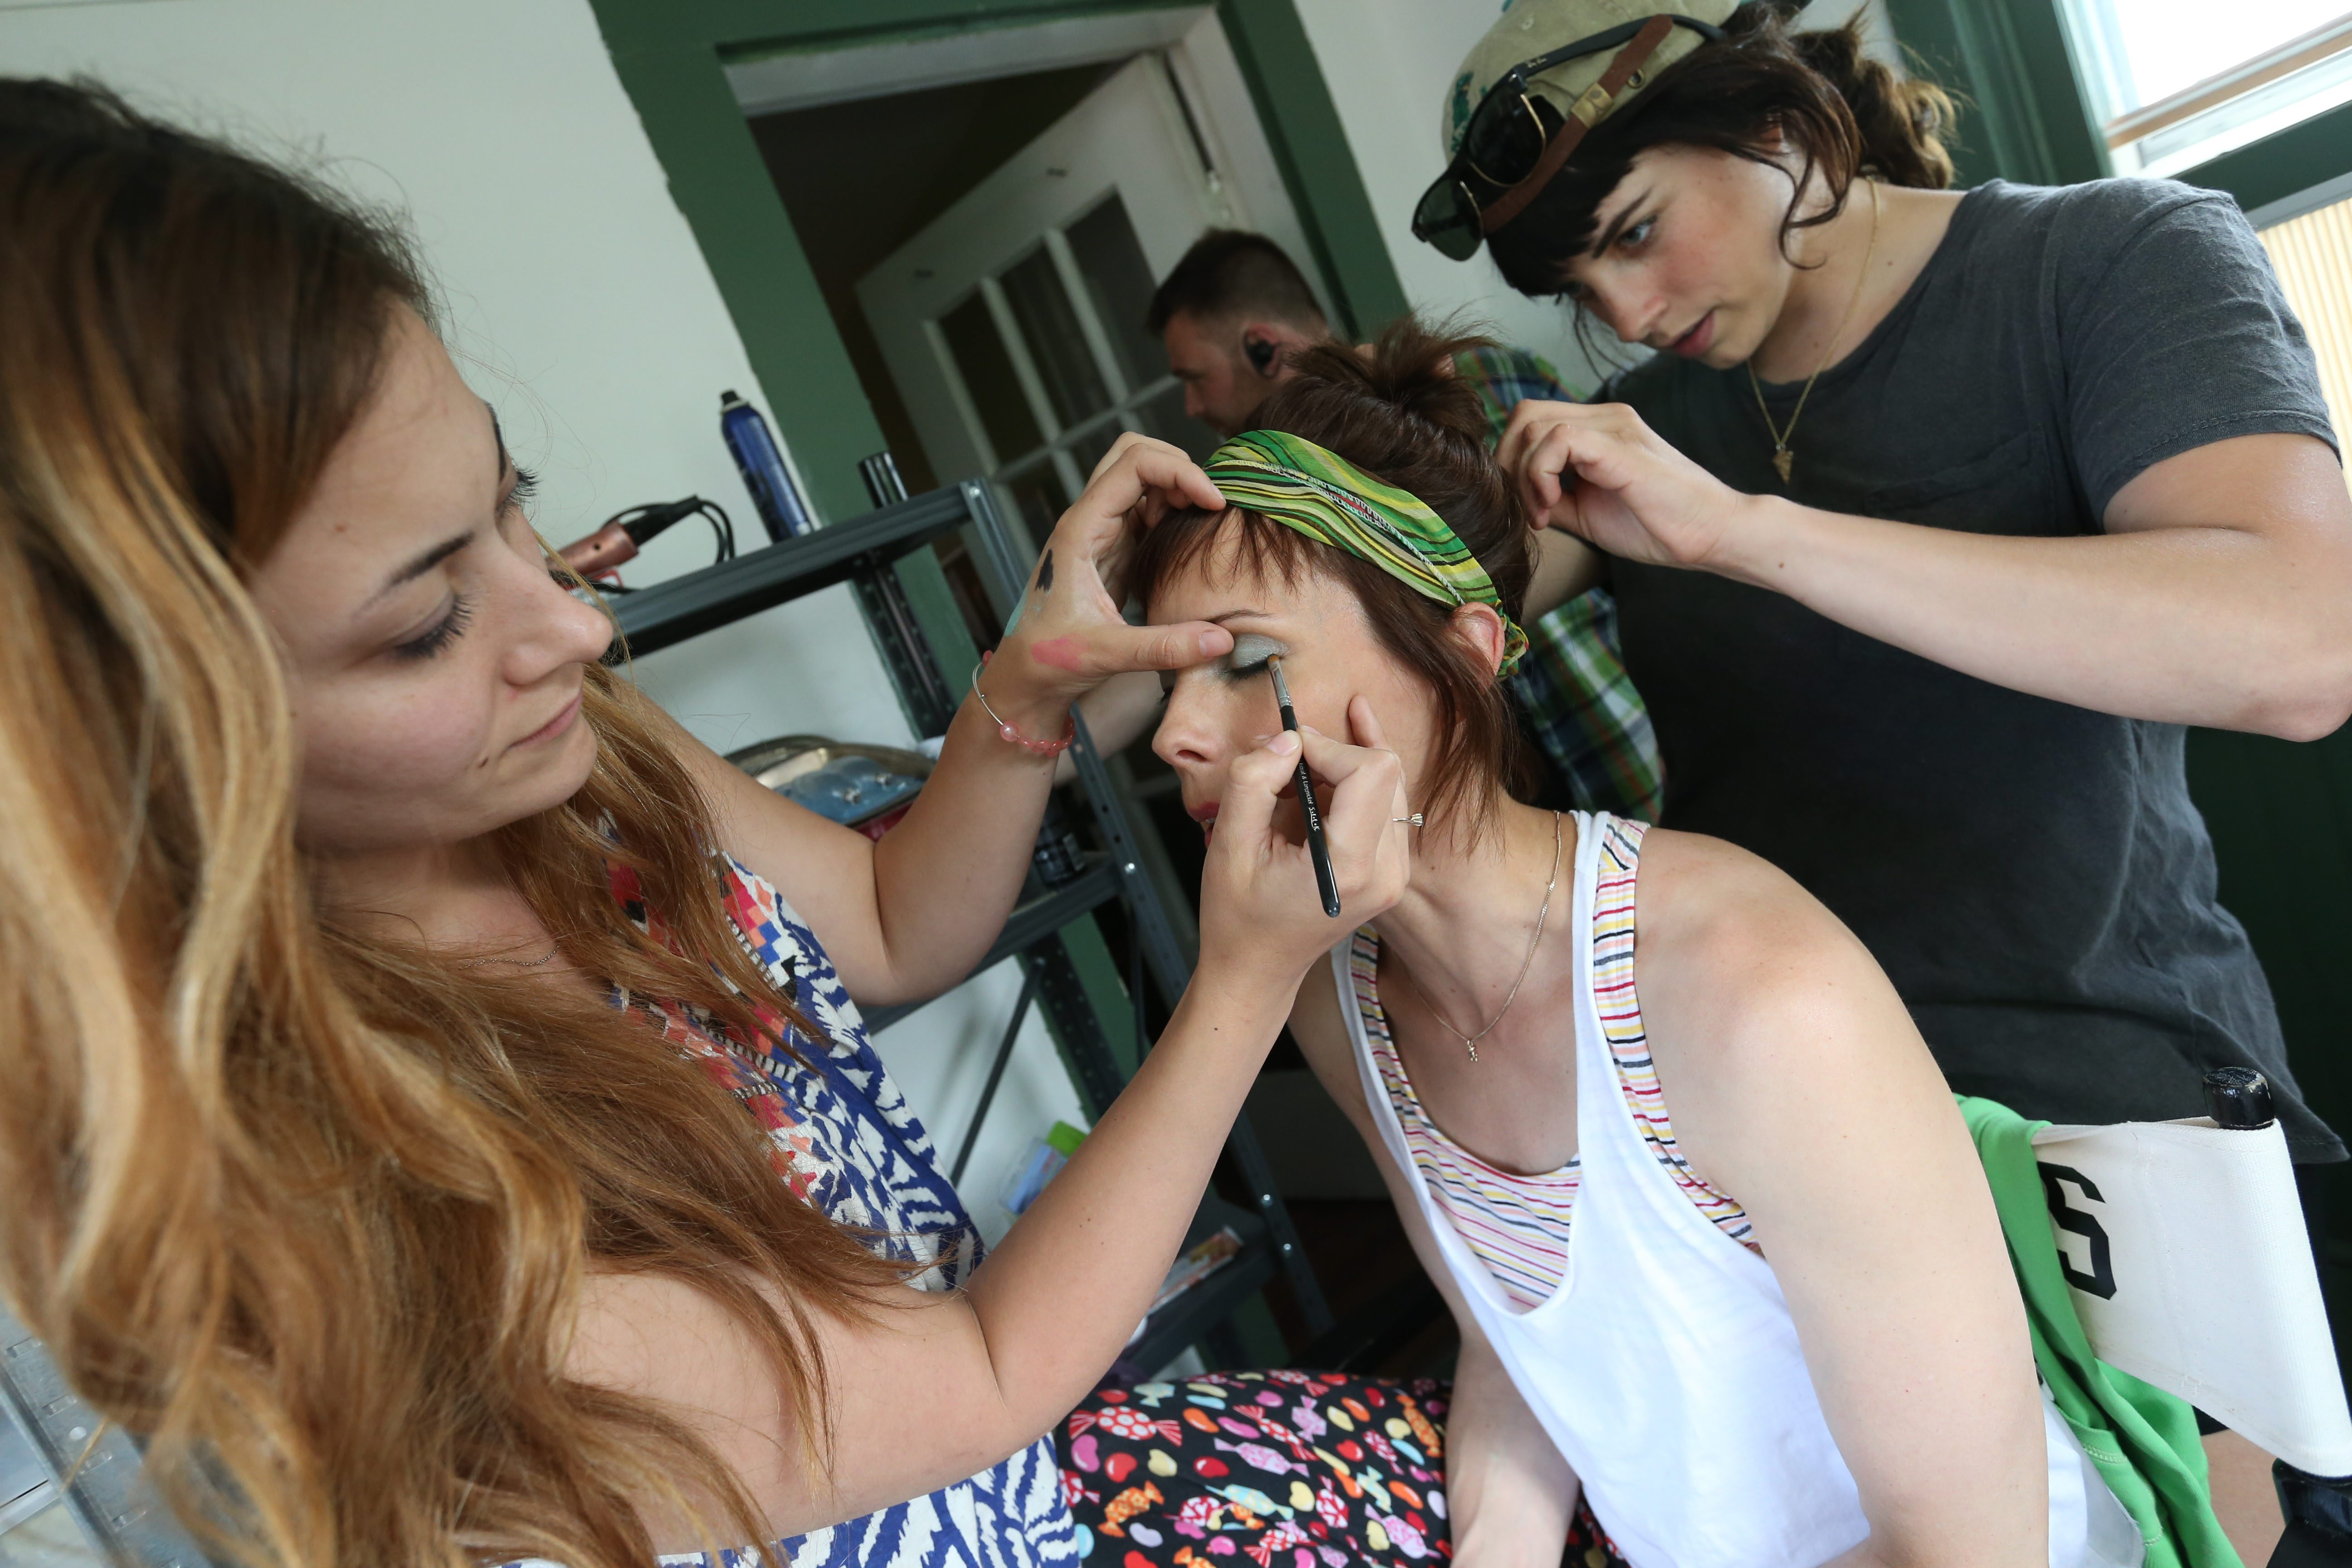 """Wilson get's her hair and makeup changed for the next scene.  Megan Norris left does makeup, while Casandra Lyons works on hair. The indie film """"Trew Calling"""" is wrapping up filming in Buffalo this week.  They're filming scenes at Trew's home played by Orchard Park native Tracey B. Wilson with costar Kevin Sizemore who plays """"I Am"""",  who is the Almighty, Thursday, June 18, 2015.  Wardrobe crew Hillary Kollar and Allison Pieroni prepare Wilson's clothes for the next scene.  The house on Knox Avenue in North Buffalo is an airbnb that was rented for the month.  The filming is happening with the support of the Buffalo Niagara Film Office.  NDstudios is doing all the production work.  """"Trew Calling"""" is a dramedy which is due to release newt summer.  (Sharon Cantillon/Buffalo News)"""